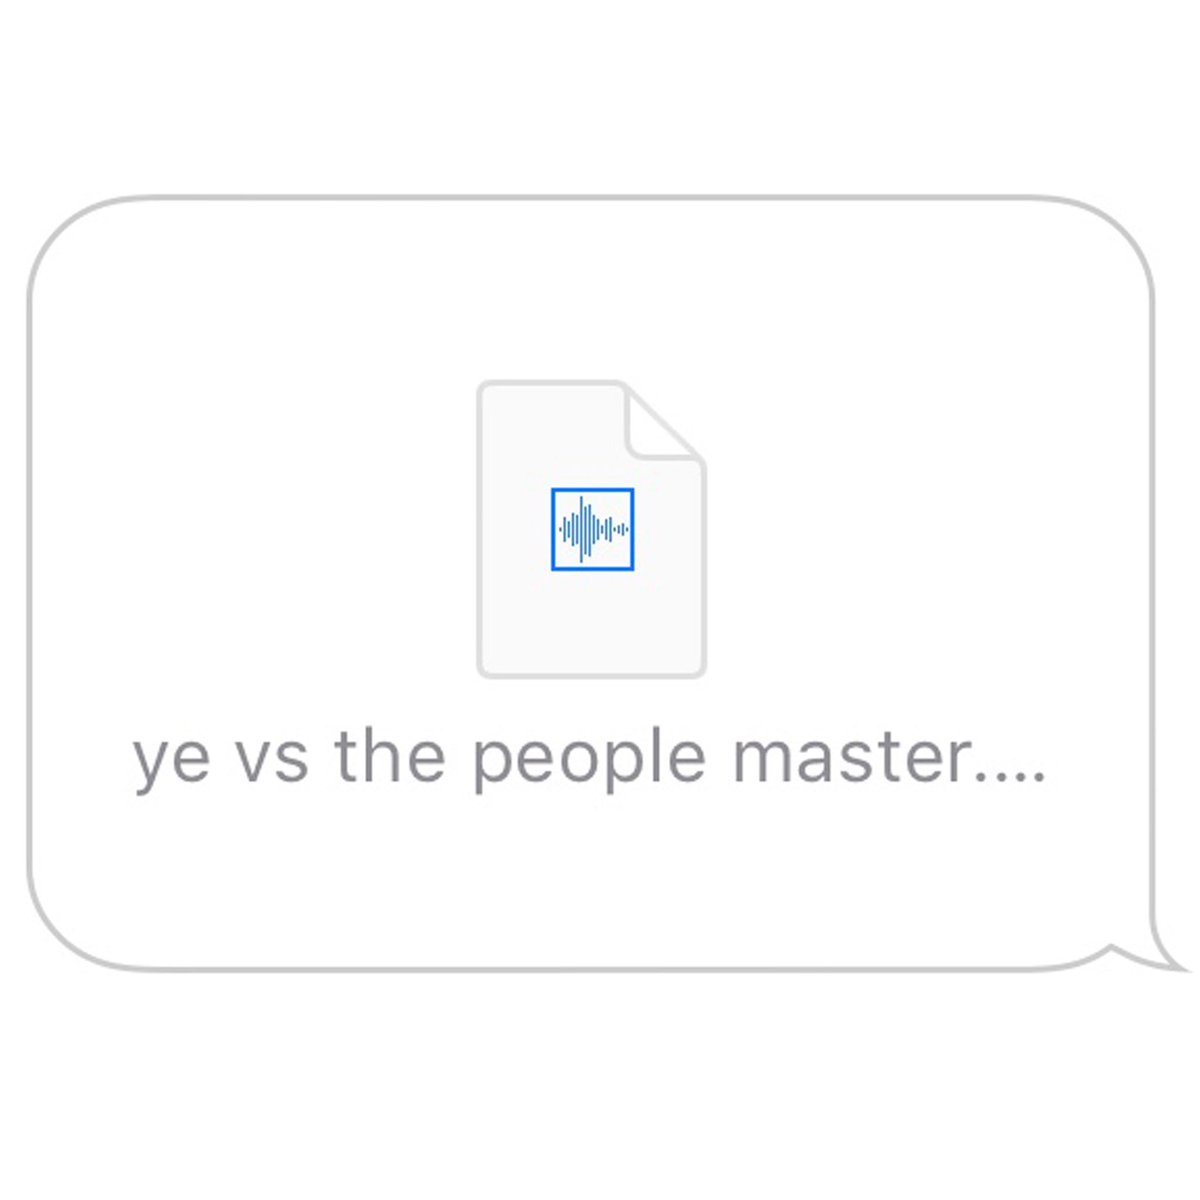 ye vs the people @  https://t.co/shjFIROujA https://t.co/8f8WZpO8WH